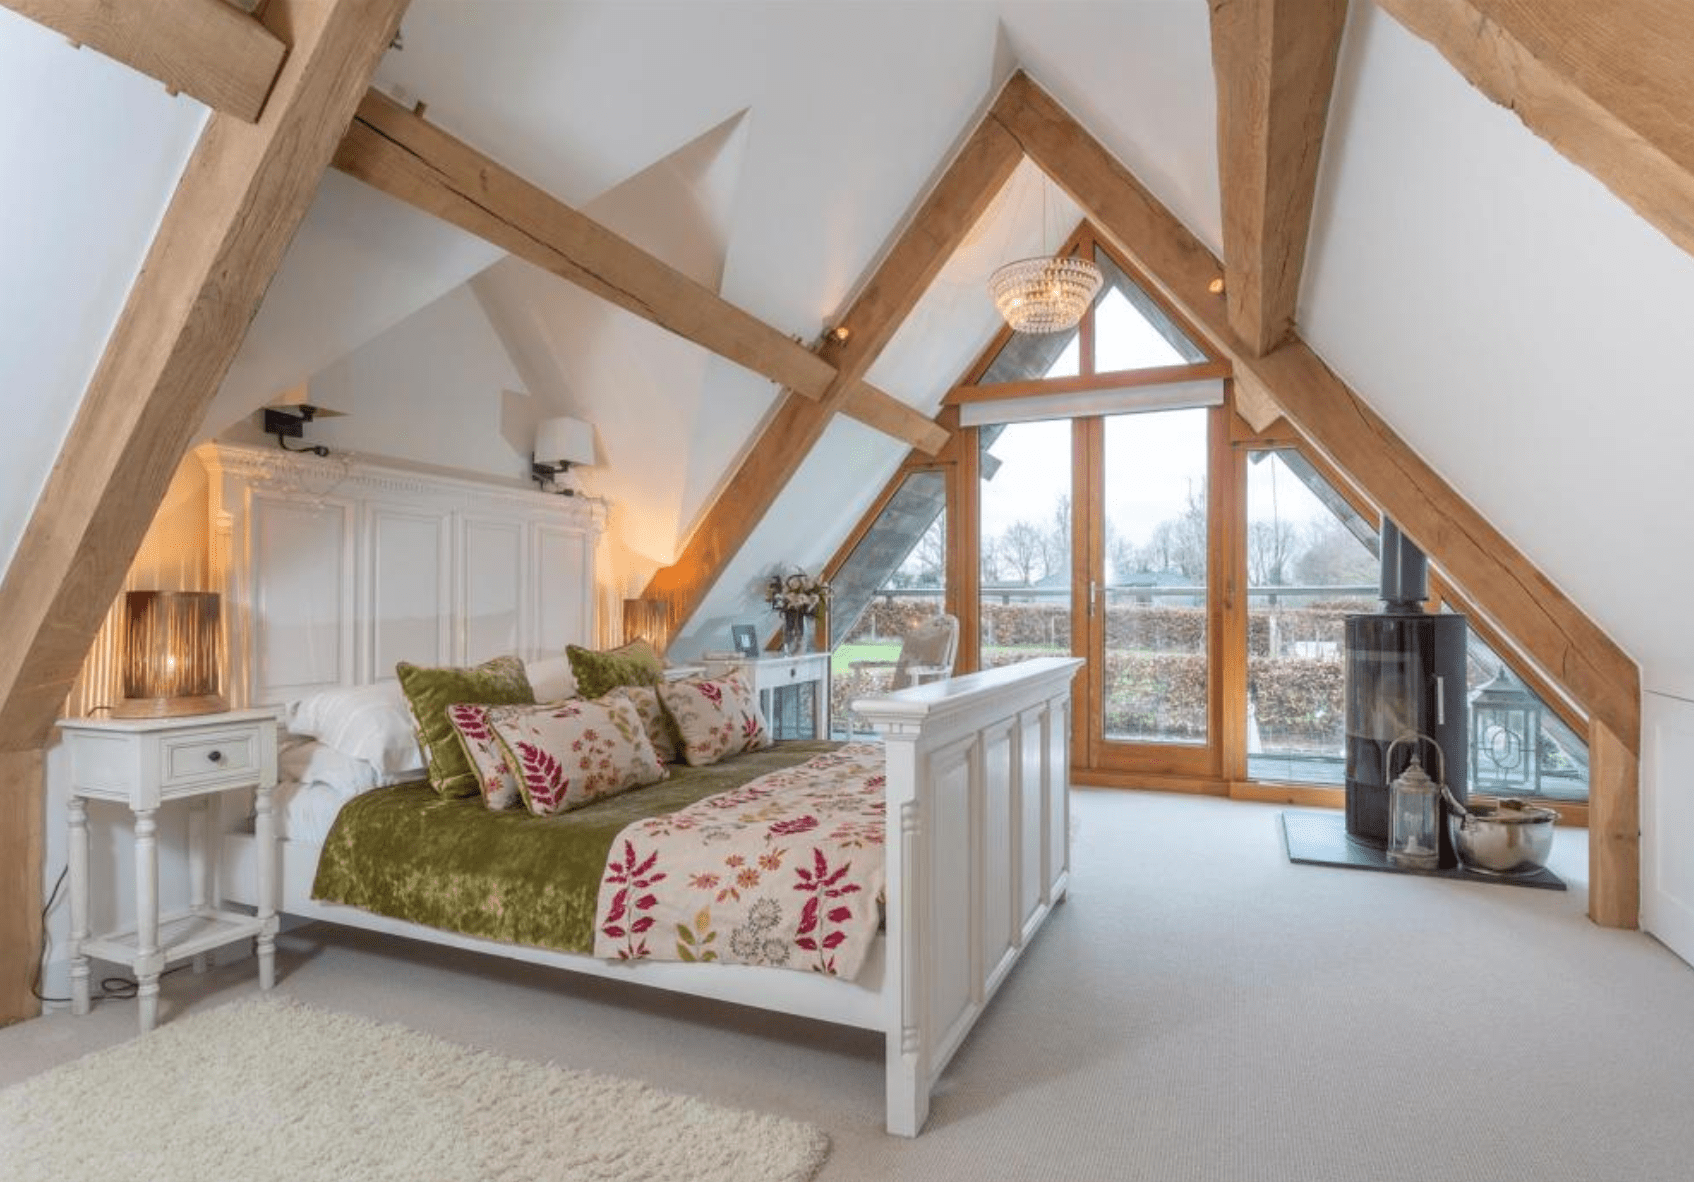 5 Epic Houses for Sale in the Cotswolds| Chedworth